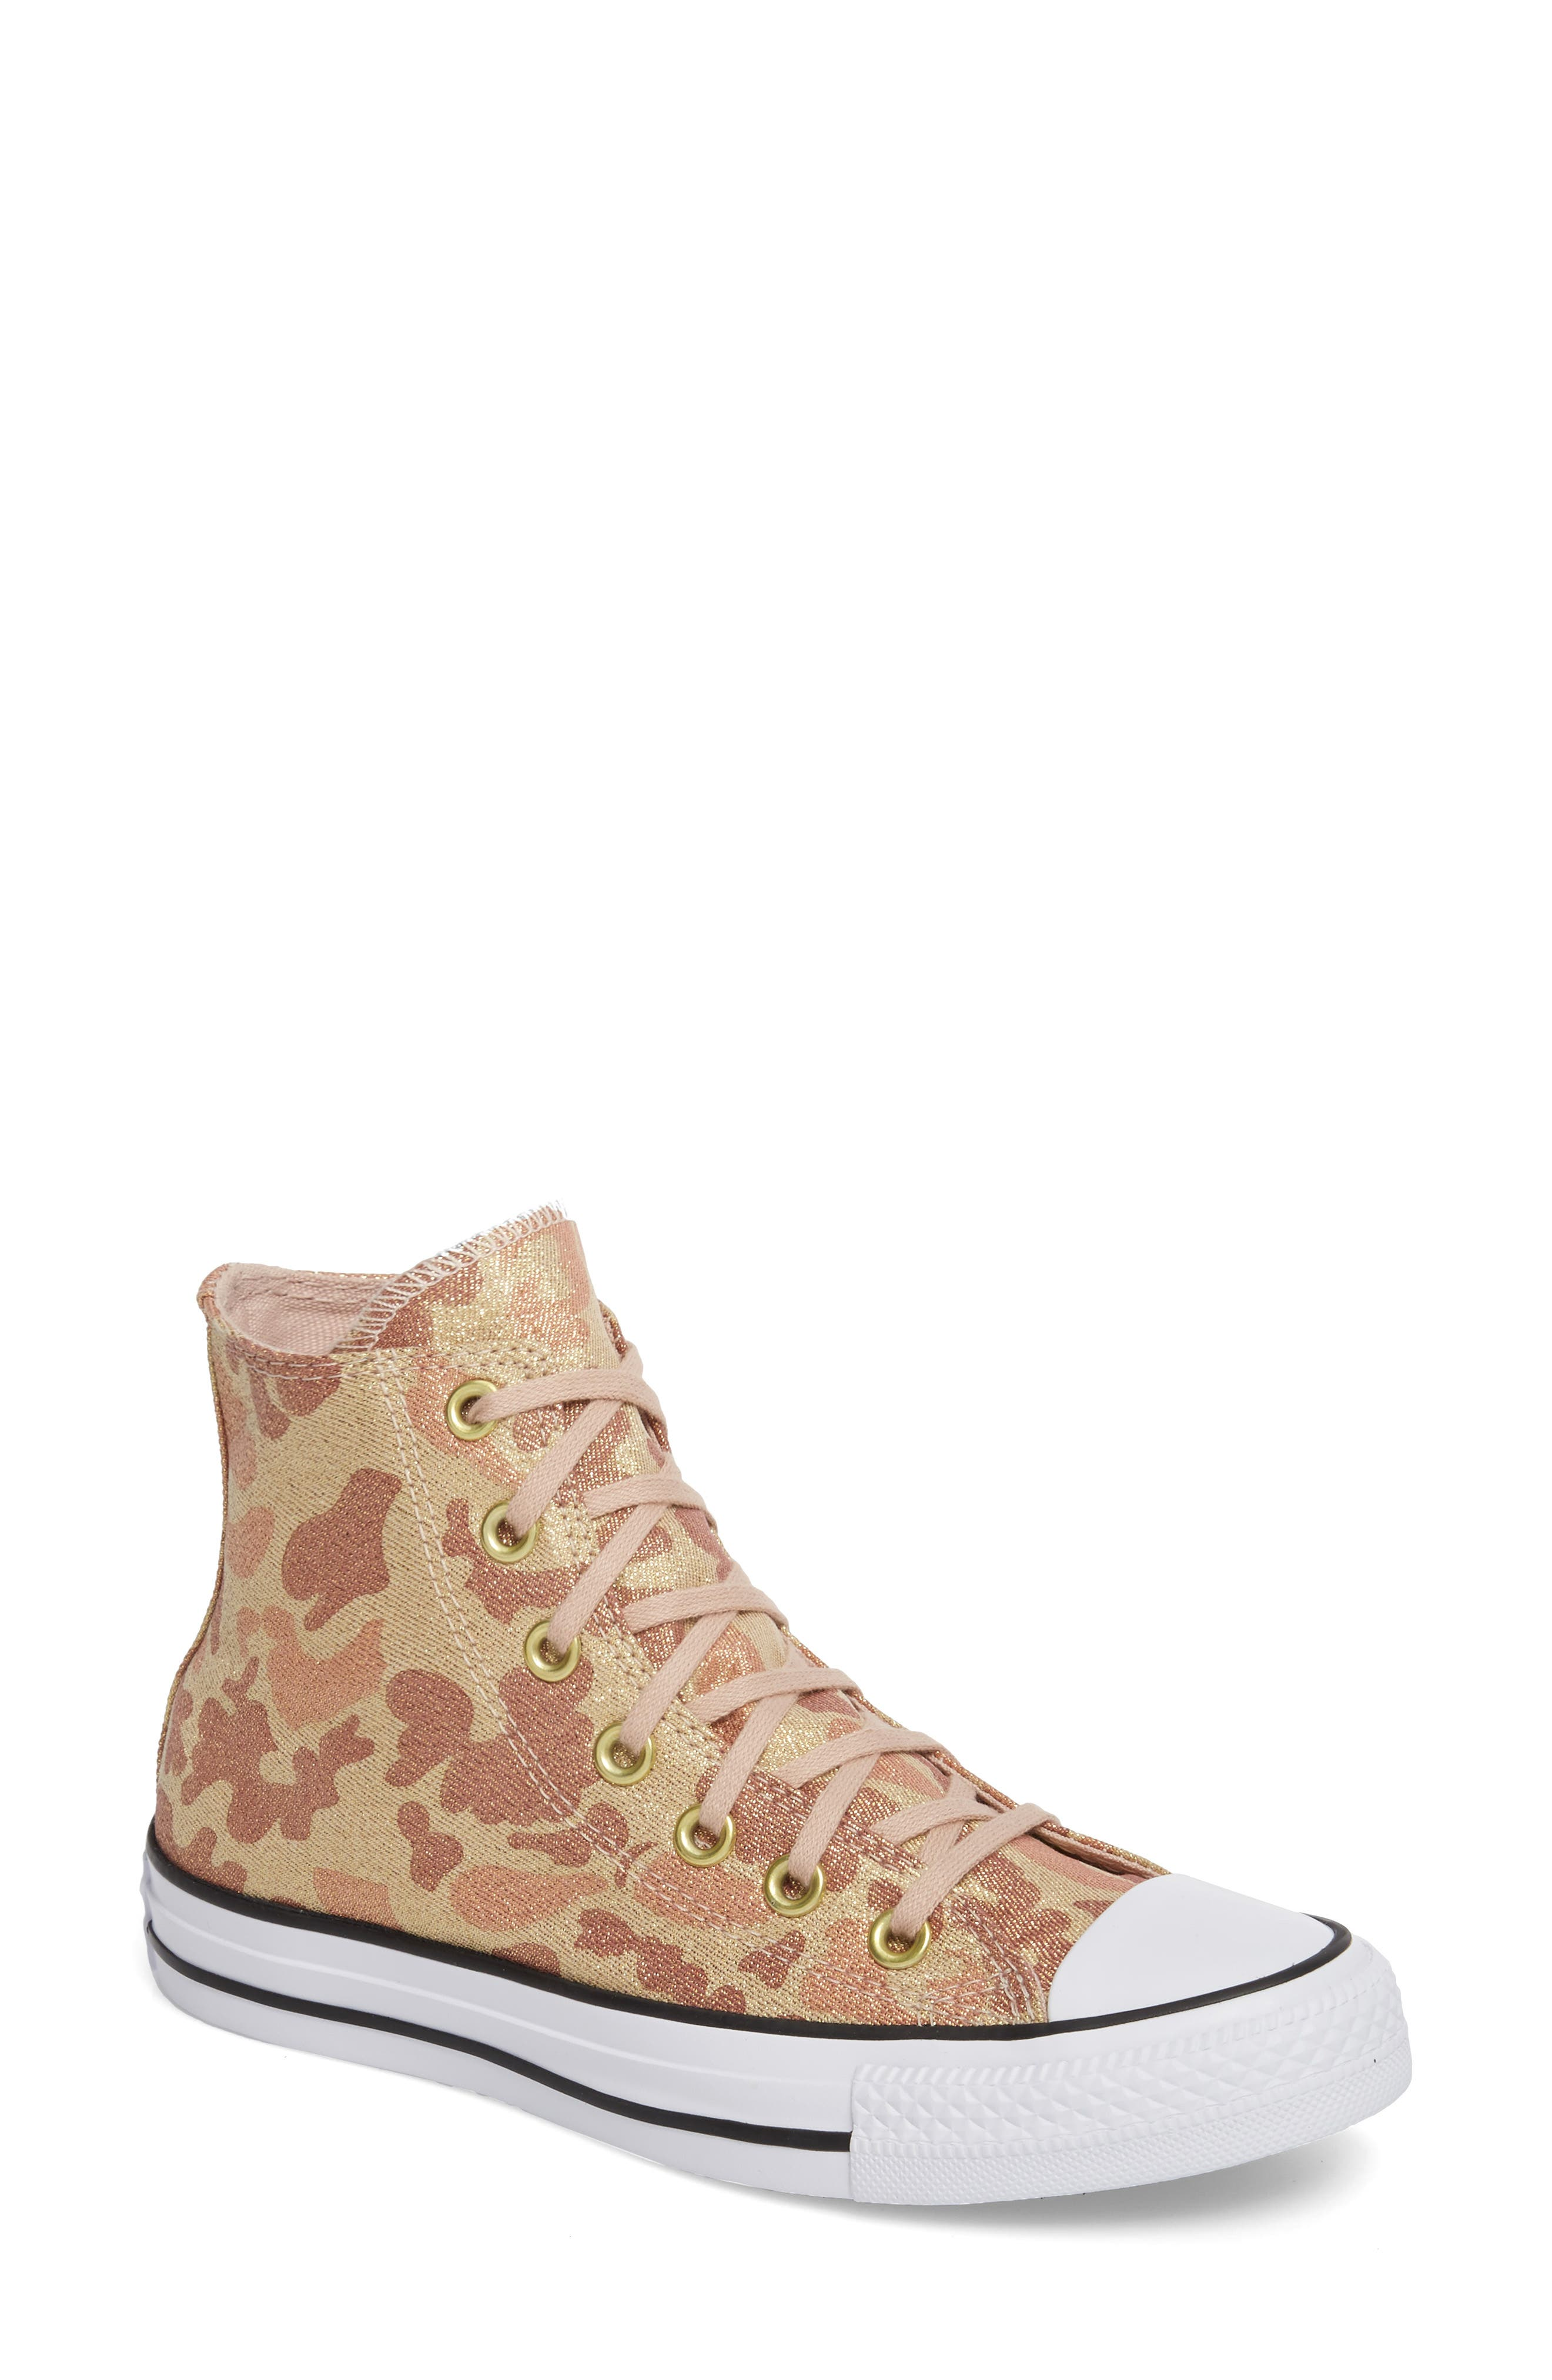 Chuck Taylor<sup>®</sup> All Star<sup>®</sup> High Top Sneaker,                         Main,                         color, Particle Beige